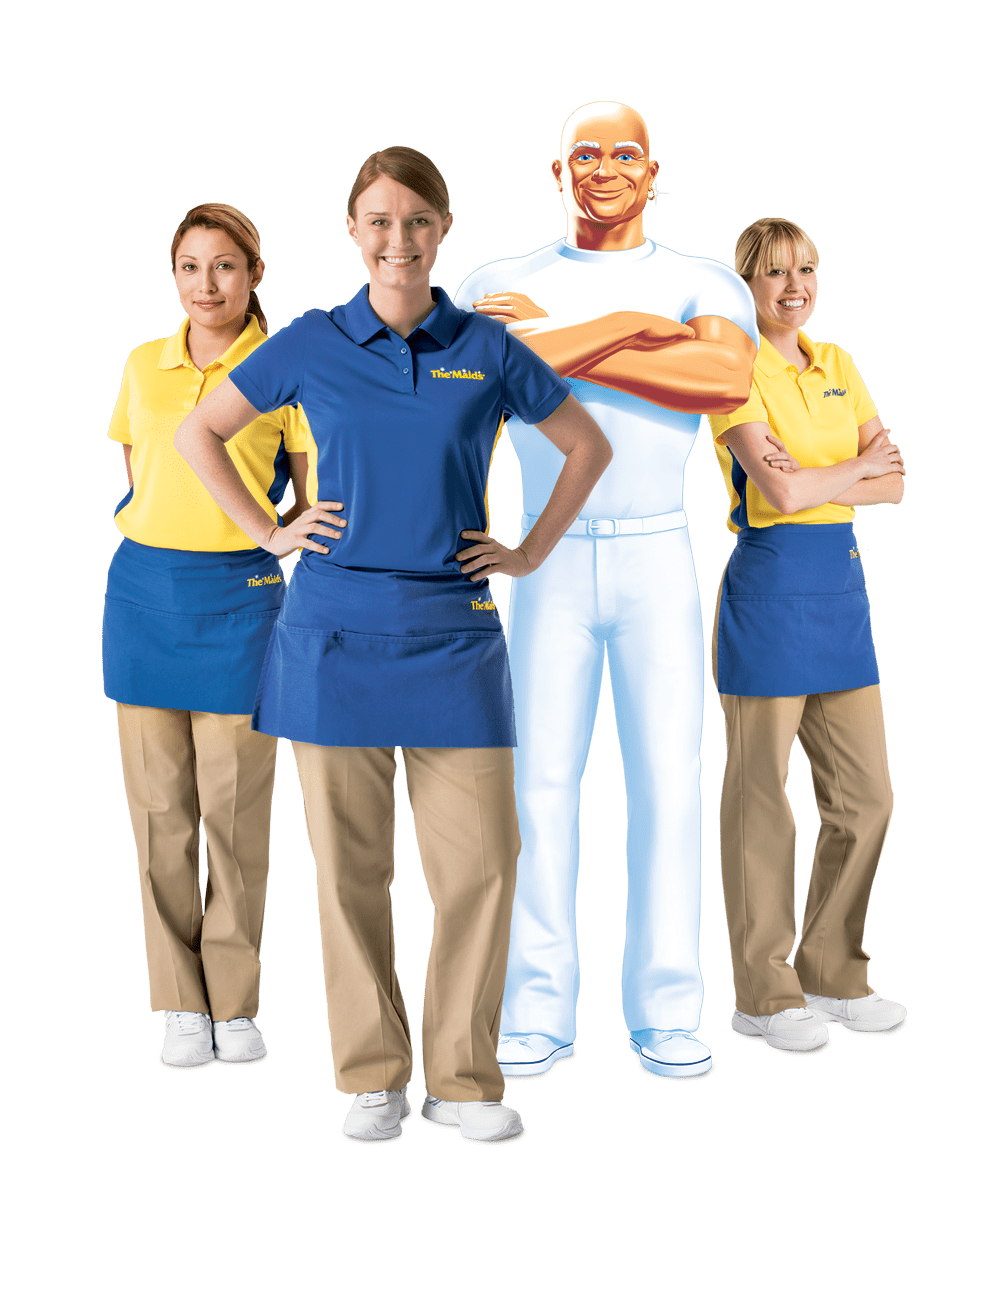 The Maids House Cleaning - The Maids in Minneapolis South Metro Home Cleaning